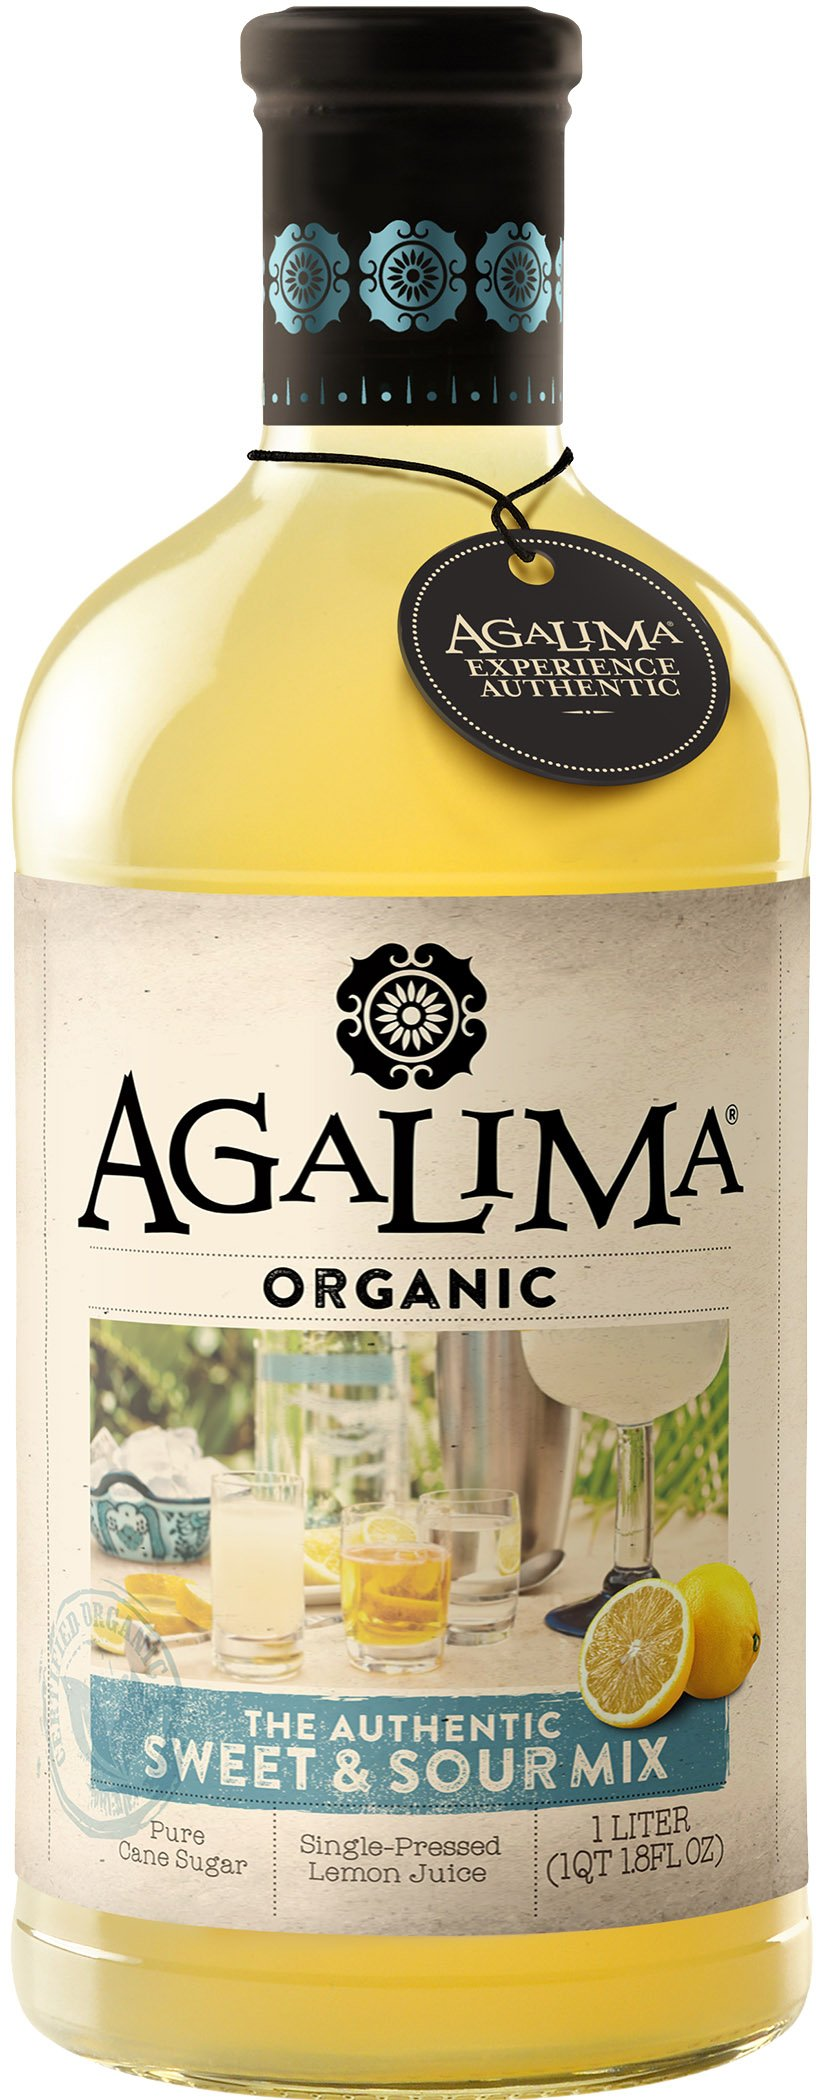 Agalima Organic Authenic Sweet & Sour Drink Mix, All Natural, 1 Liter (33.8 Fl Oz) Glass Bottle, Individually Boxed by AGALIMA